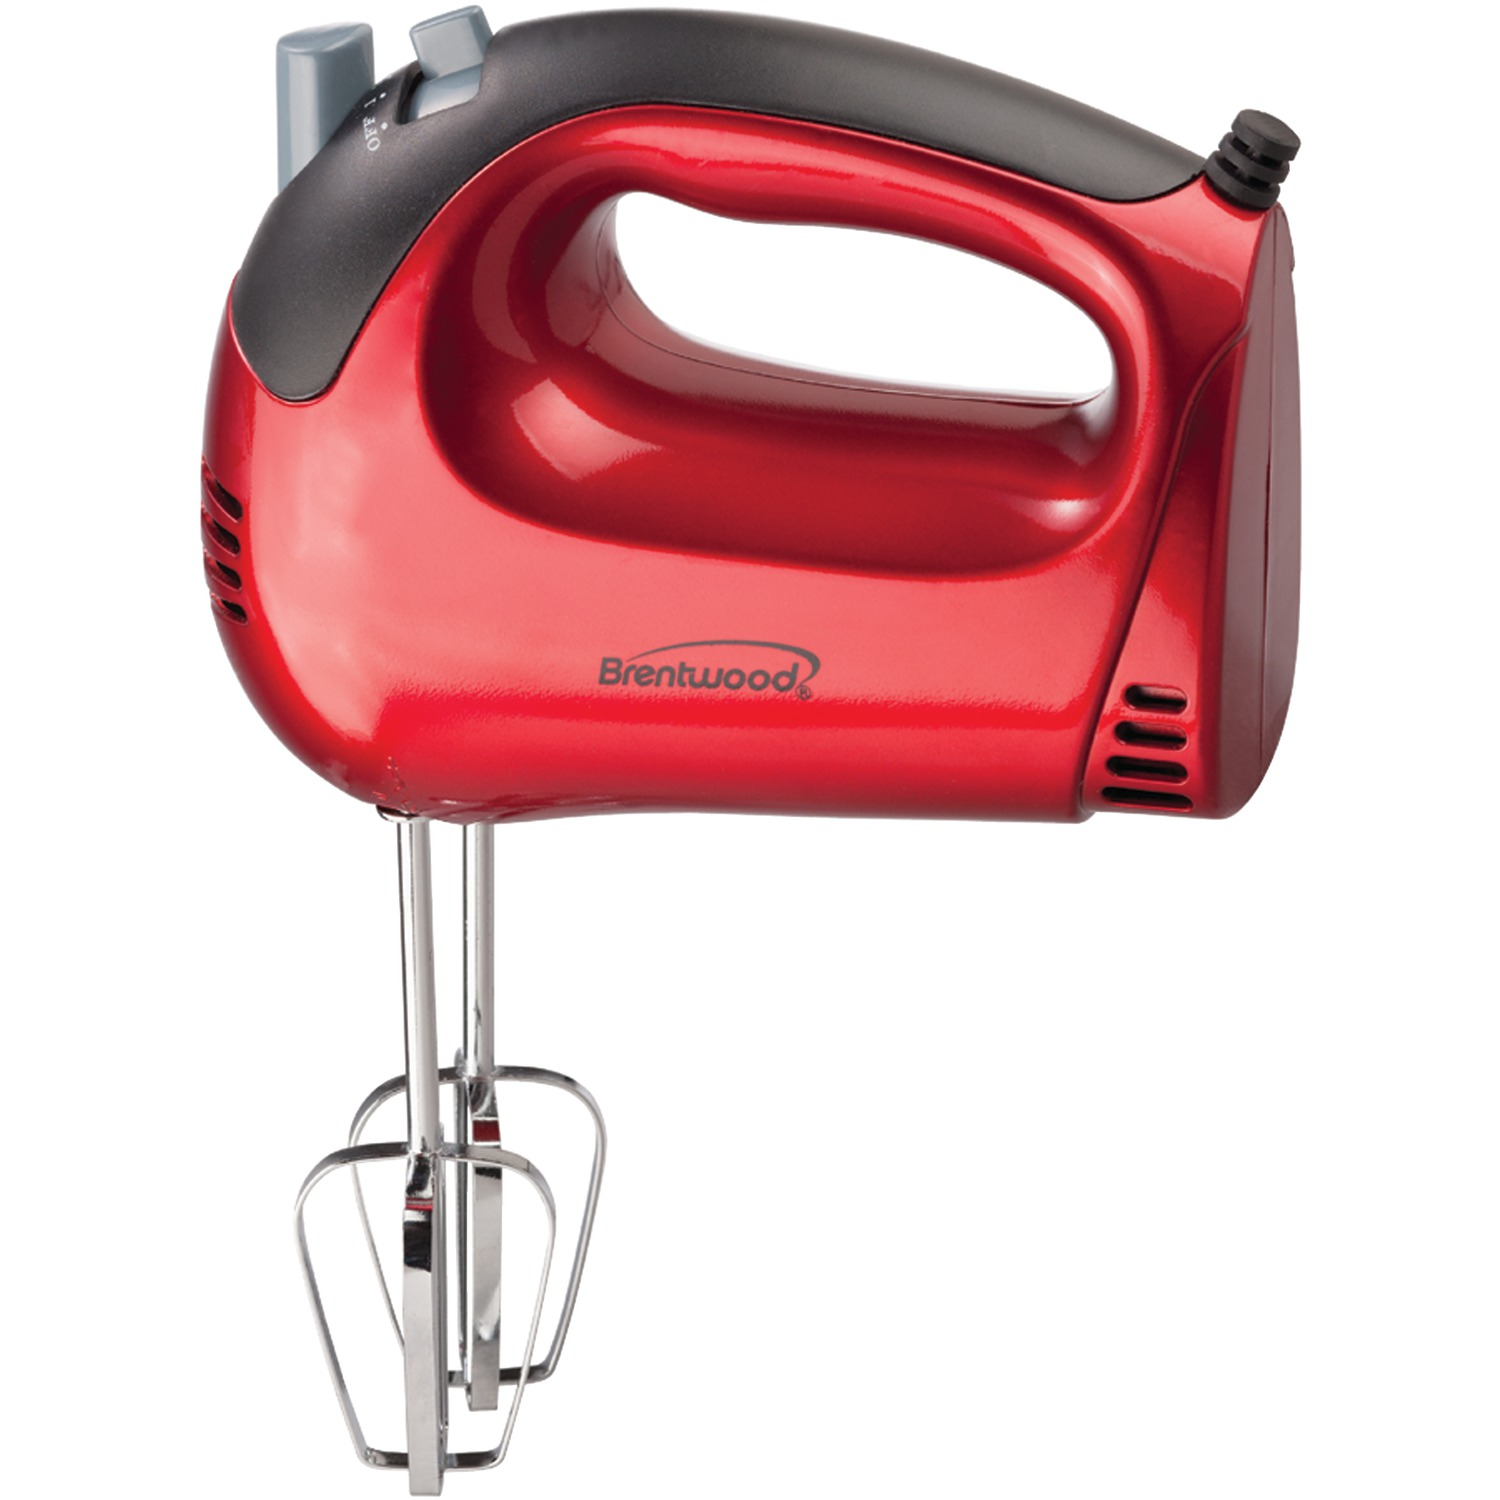 Brentwood HM-46 Lightweight 5-Speed Electric Hand Mixer by Brentwood